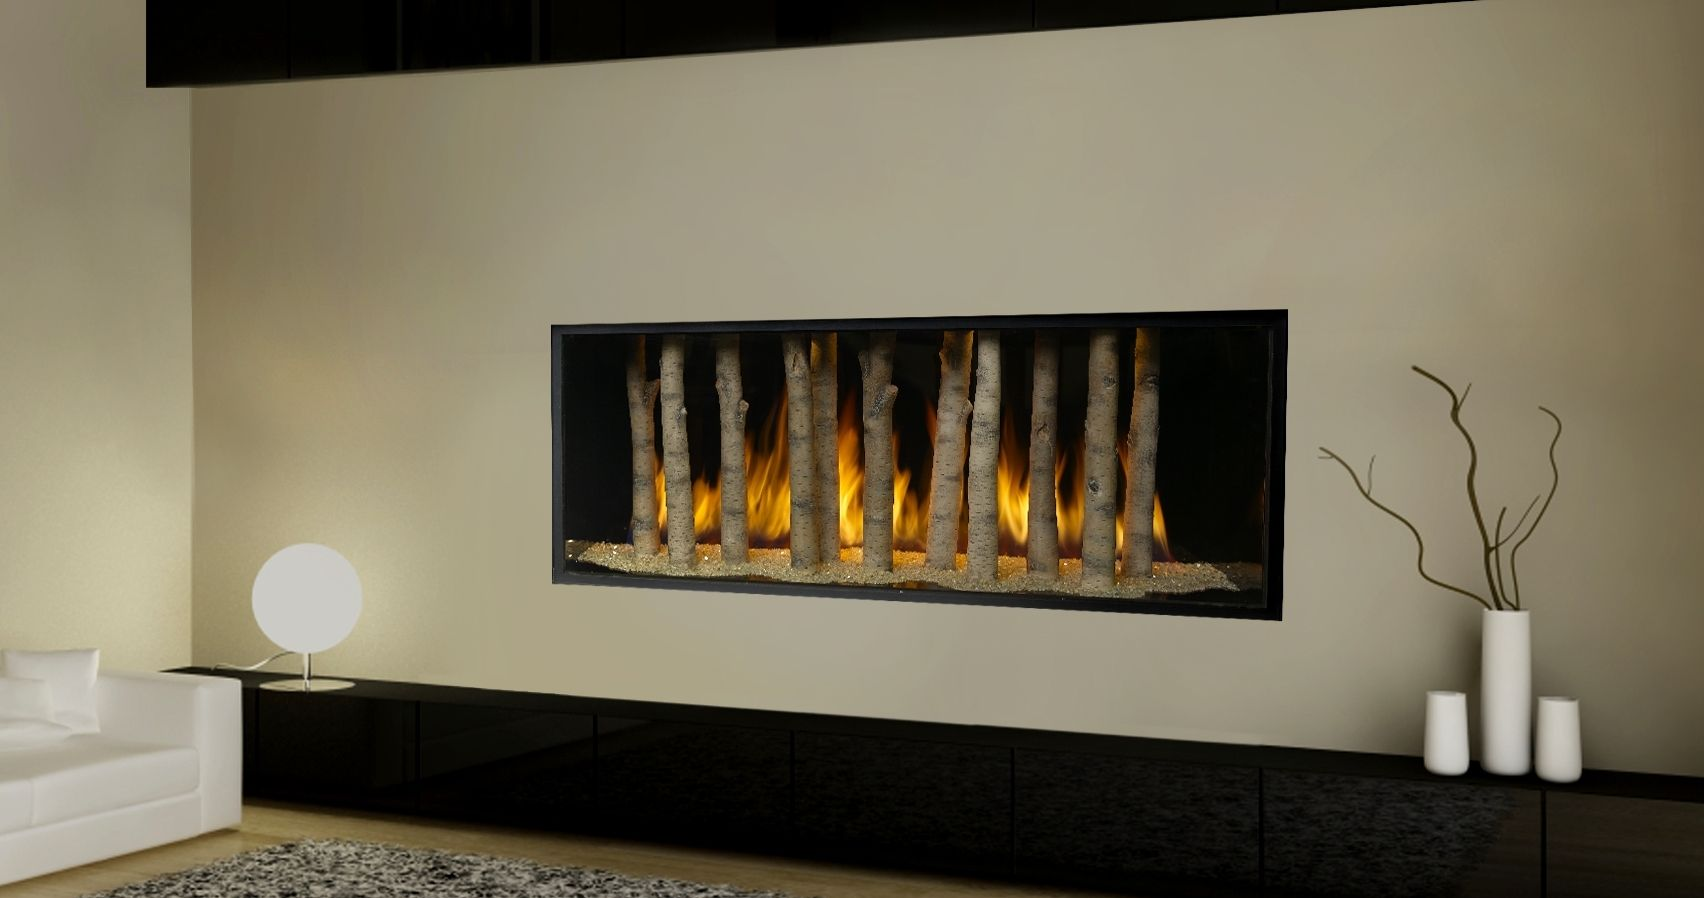 Unique Gas Fireplace Design Ideas With Creative Fireplace